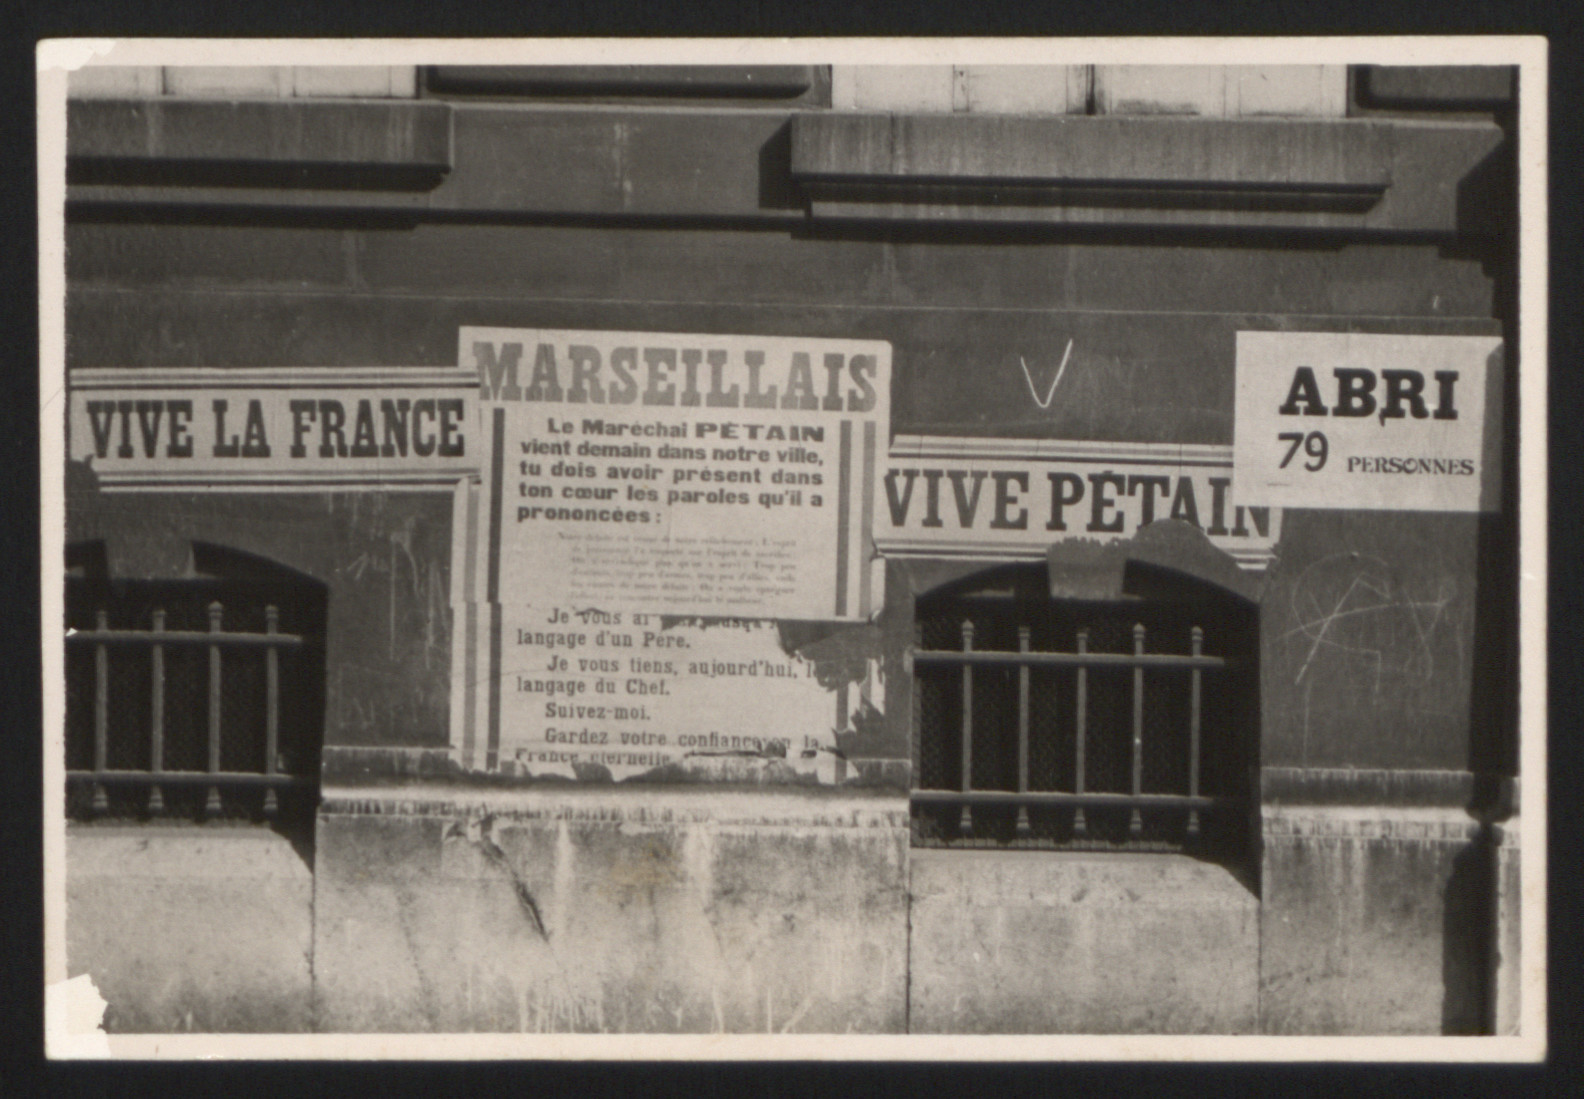 An array of posters announcing the arrival of Marshall Petain to Marseilles.